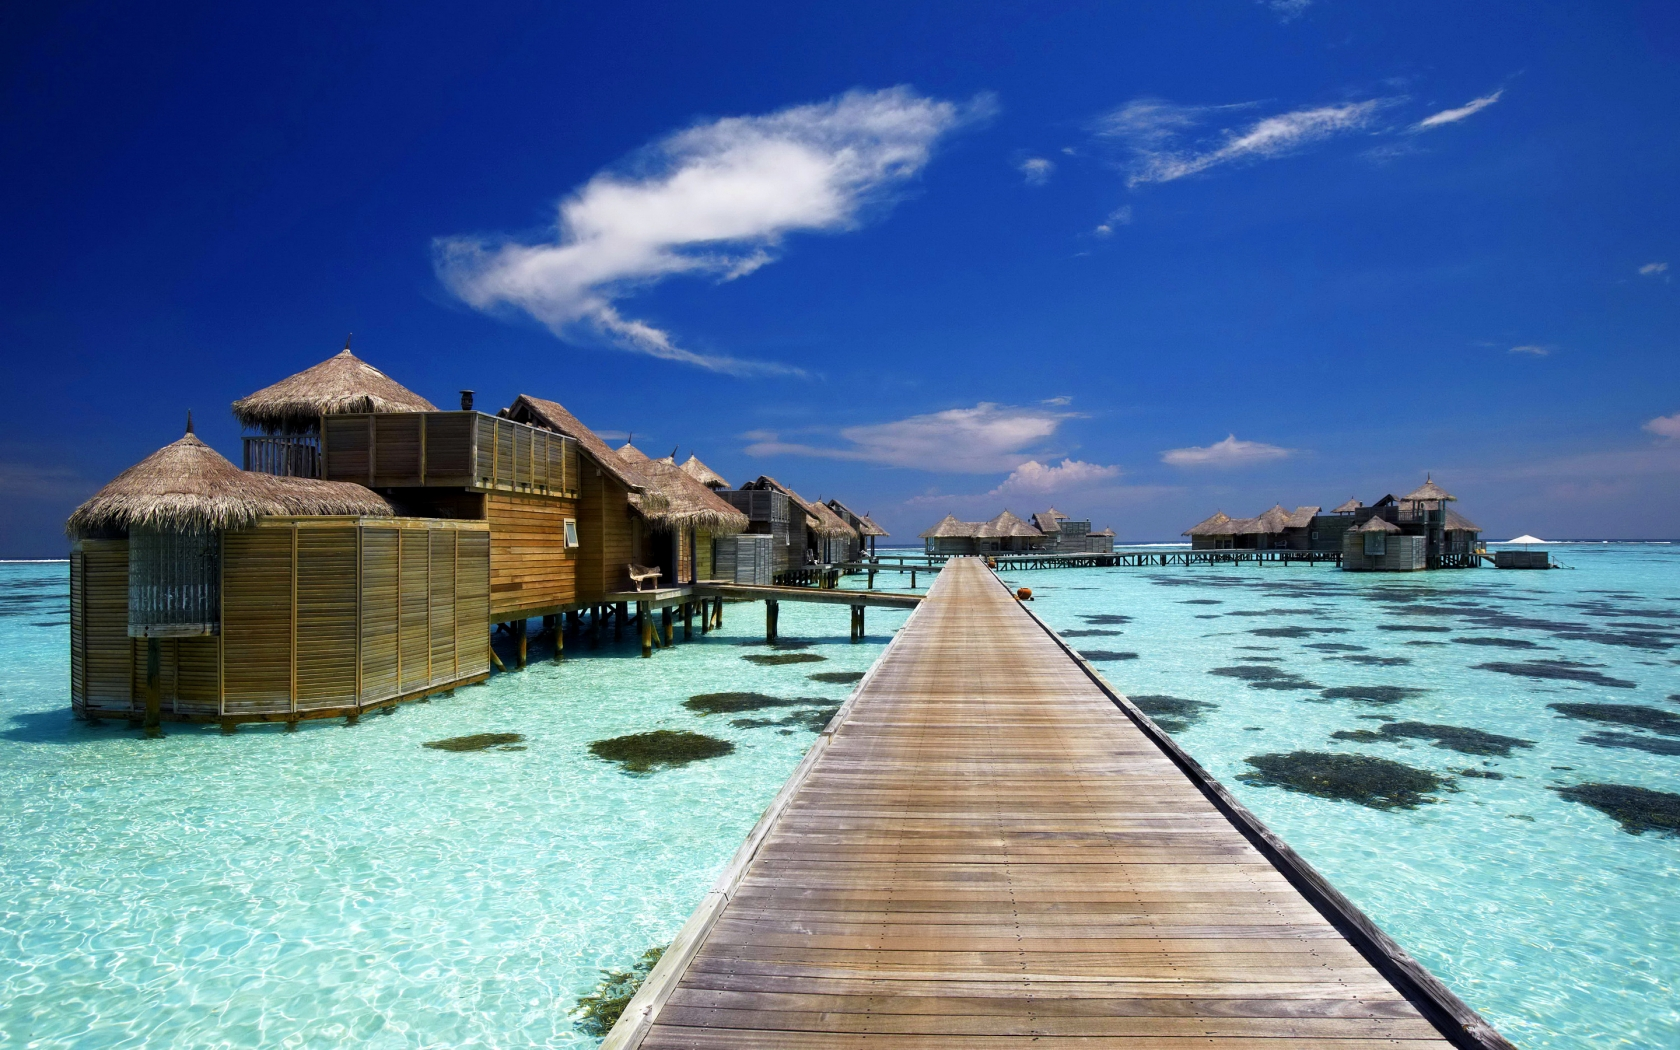 Luxury Resort in Maldives for 1680 x 1050 widescreen resolution